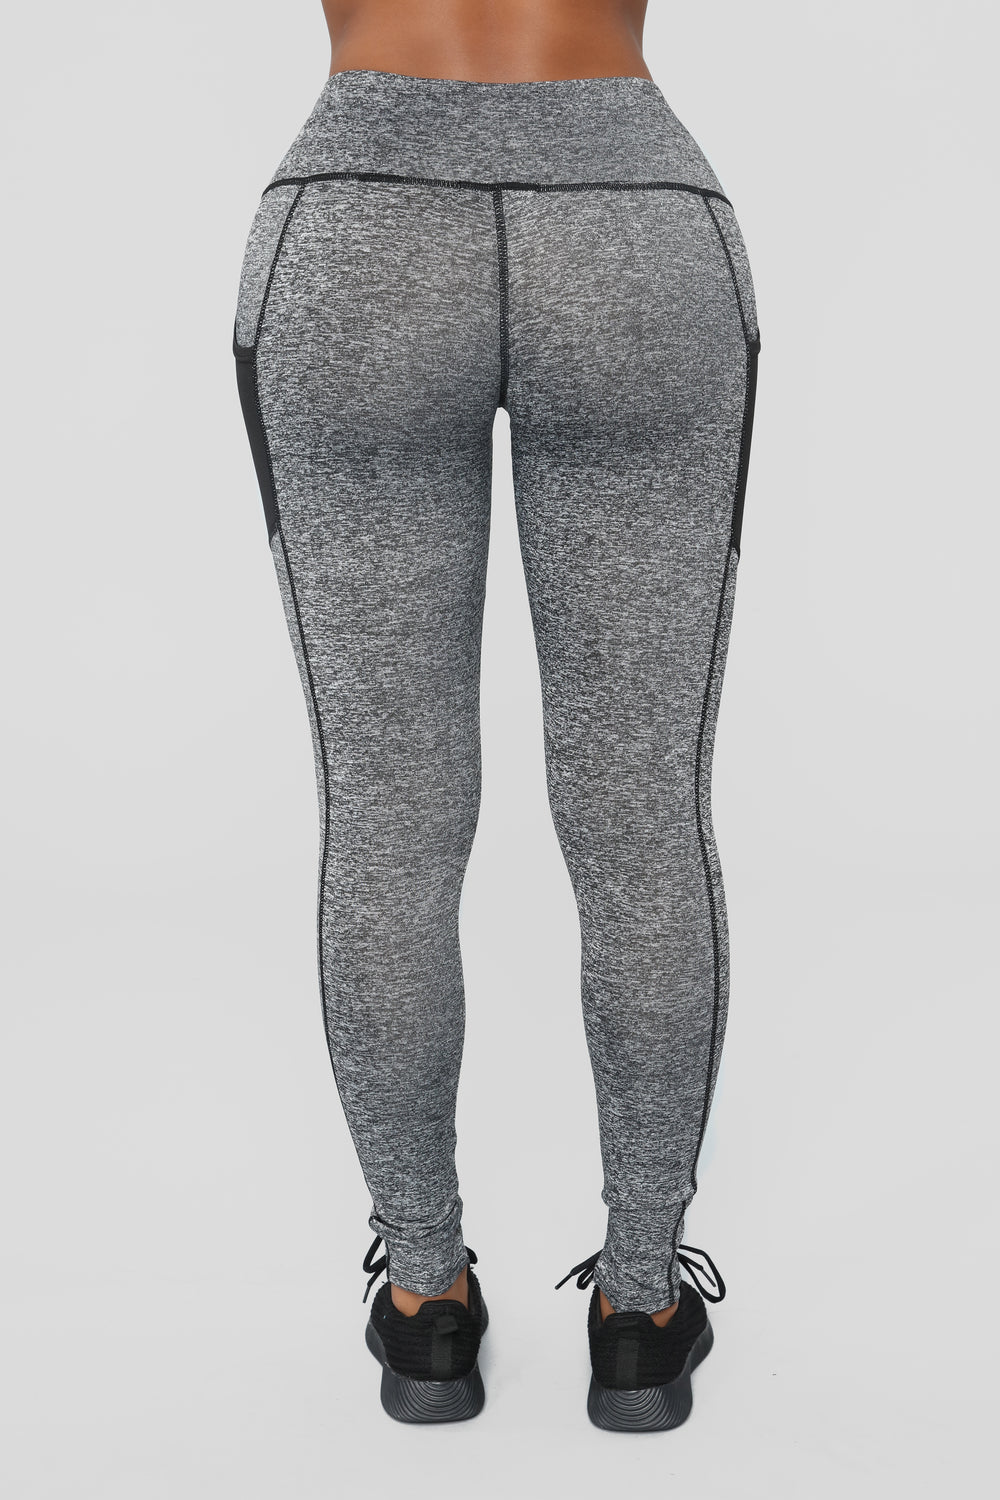 For The Finish Active Leggings - Charcoal